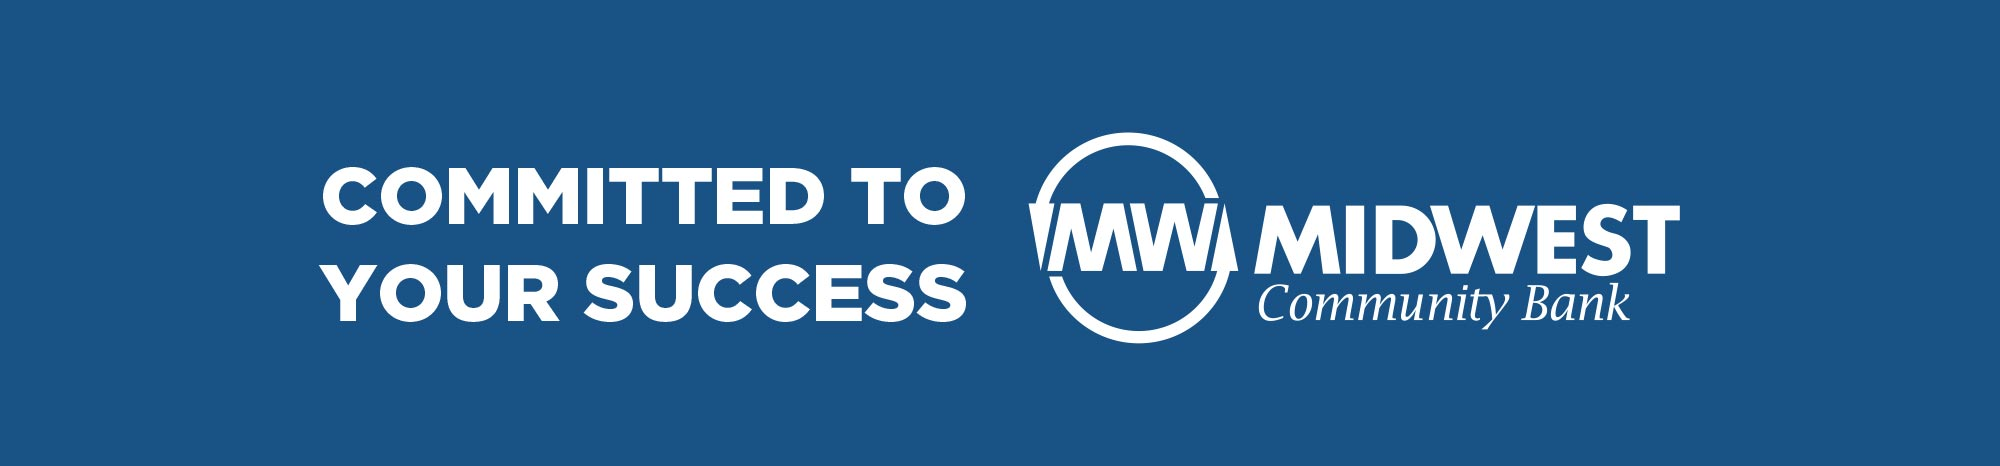 Midwest Bank | Committed to your success